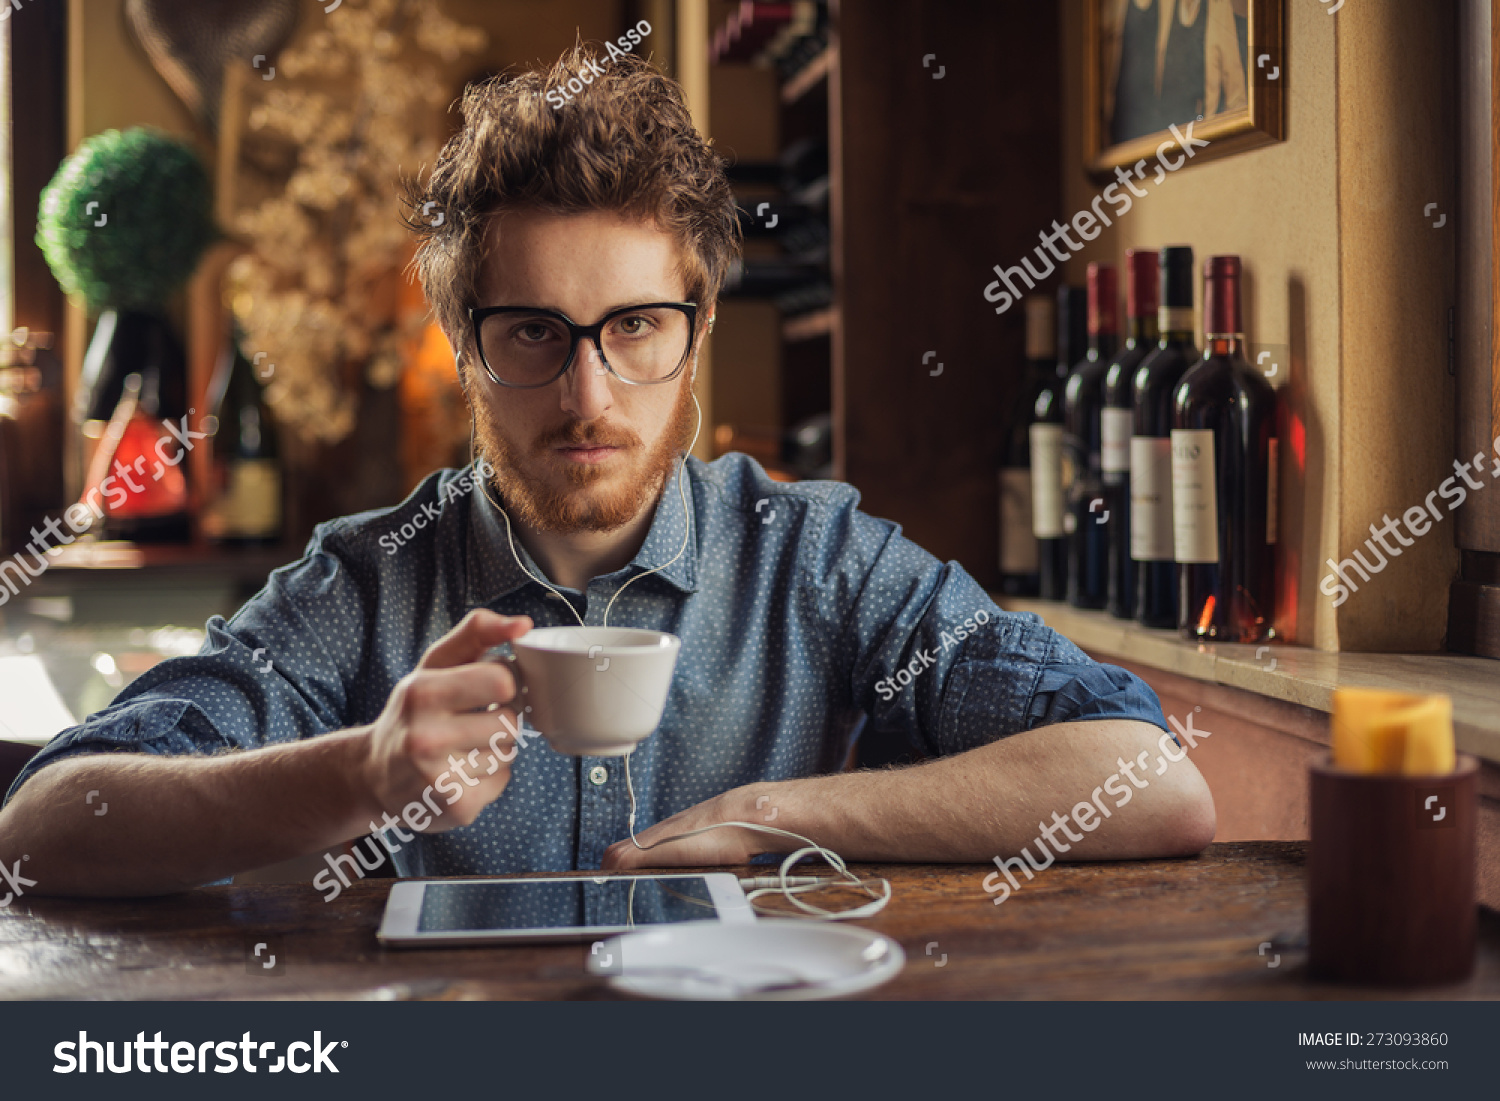 Nerd Hipster Guy With Glasses Sitting At Bar Table And ...